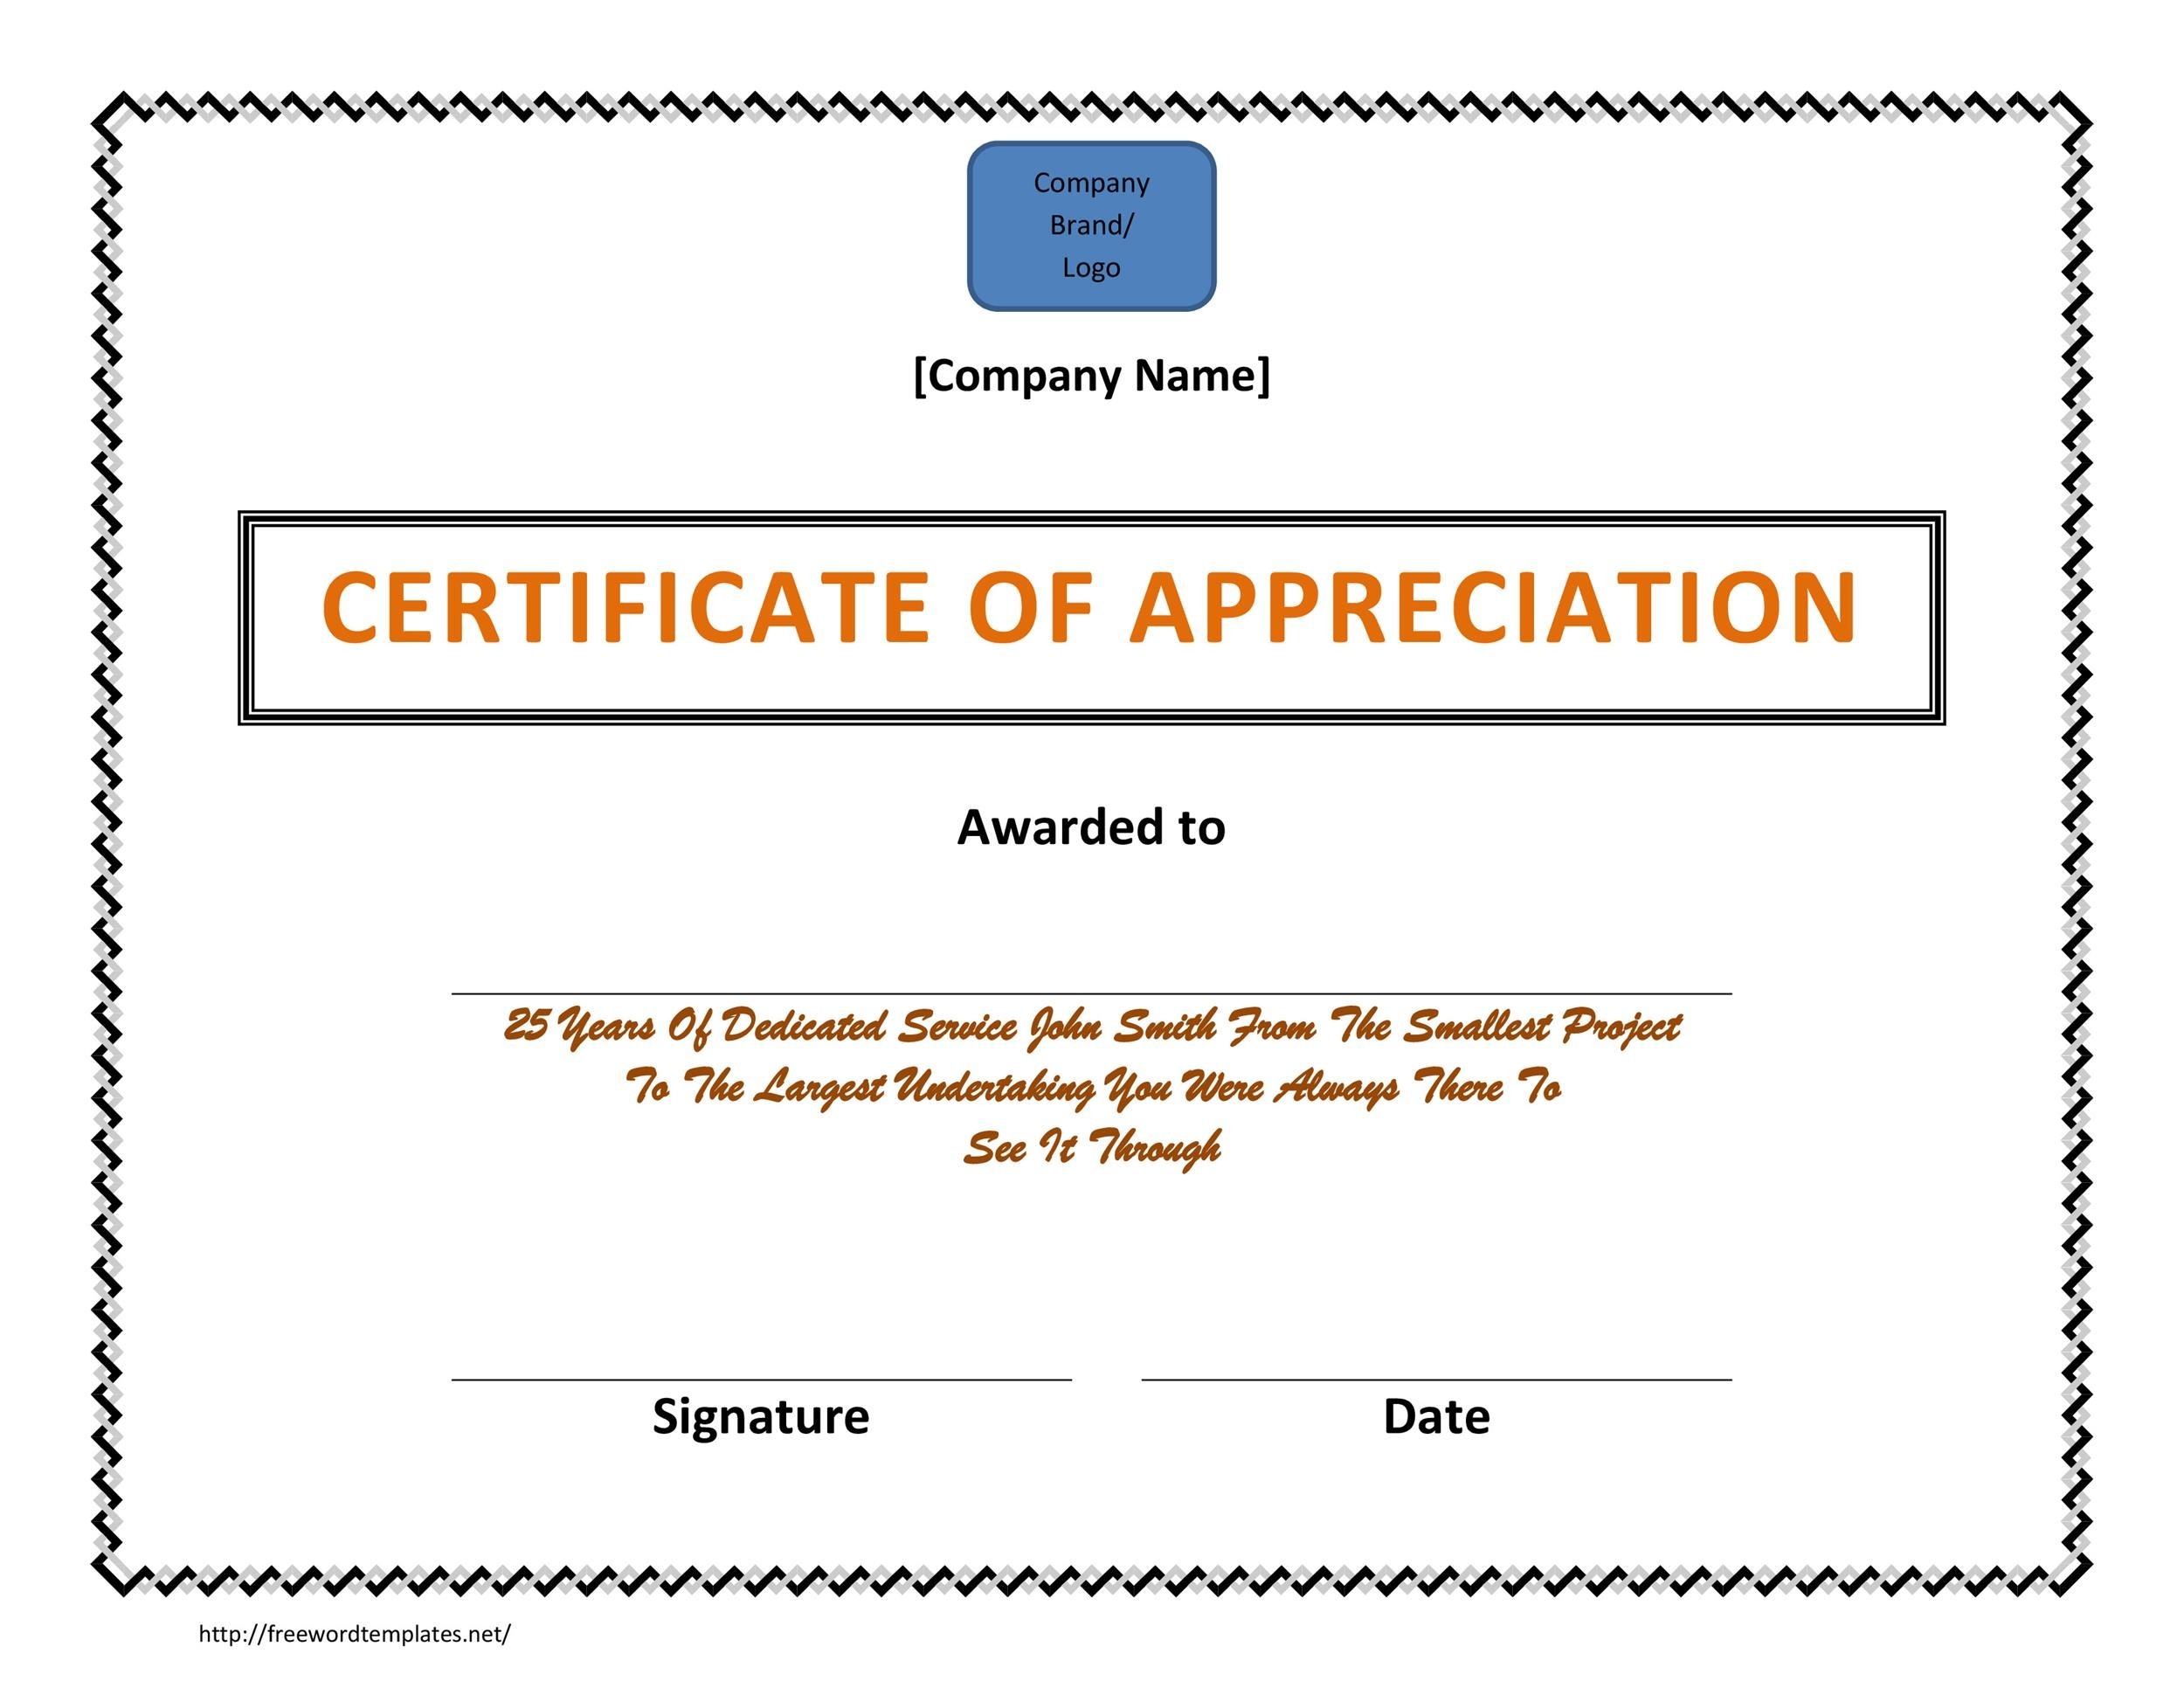 Free certificate of appreciation templates and letters printable certificate of appreciation 05 expocarfo